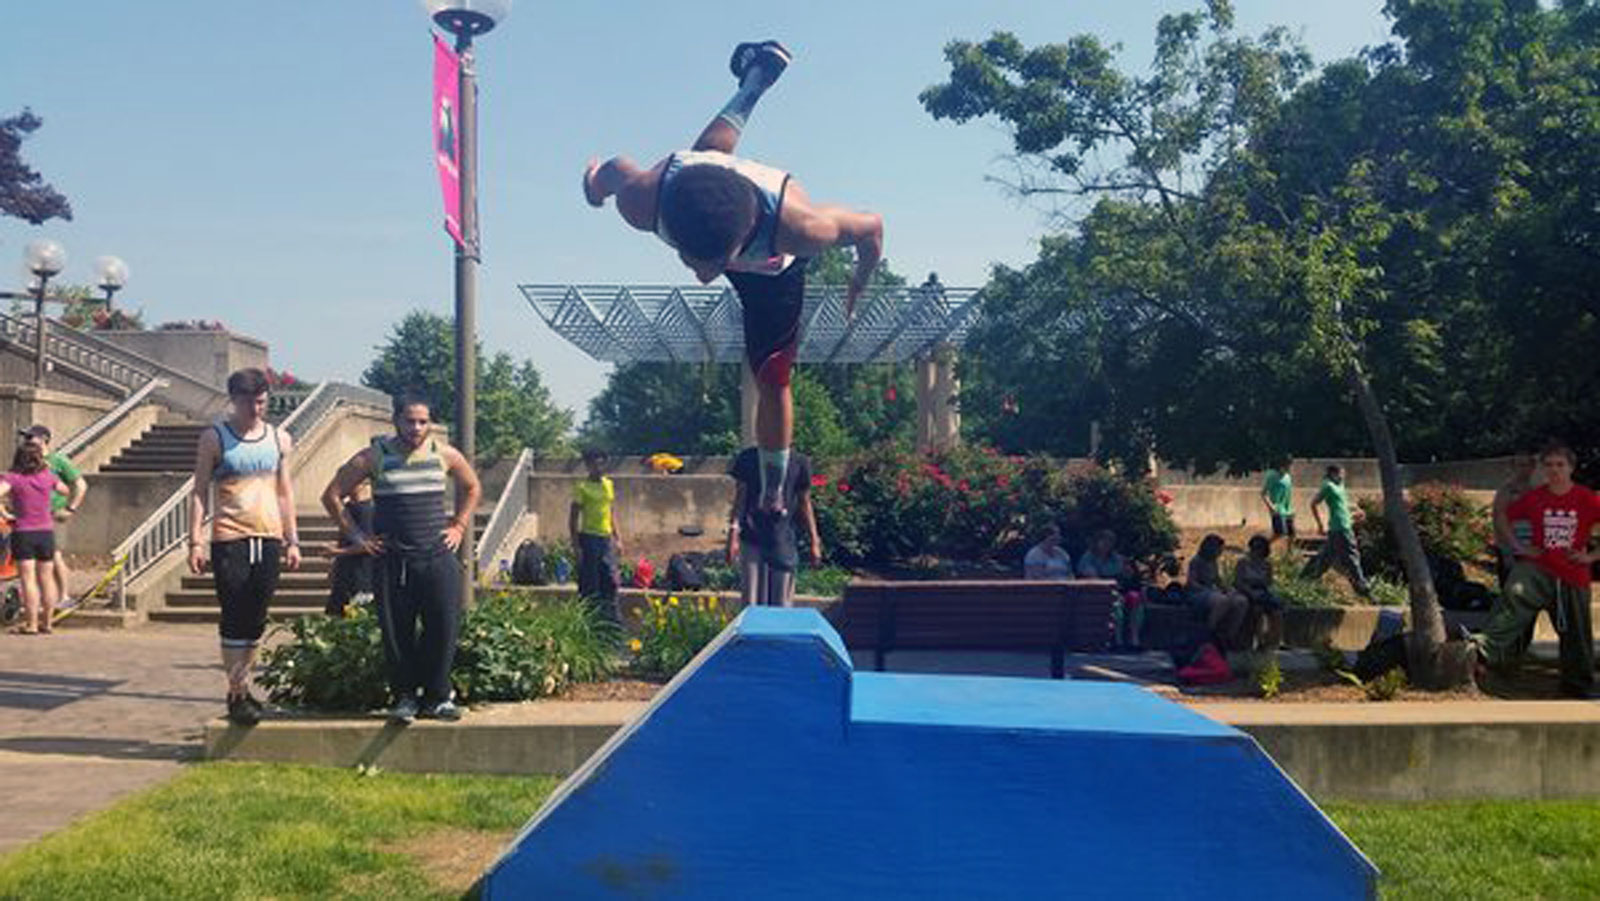 Defying gravity at American Parkour Festival in Rosslyn at Gateway Park. (WTOP/Kathy Stewart)